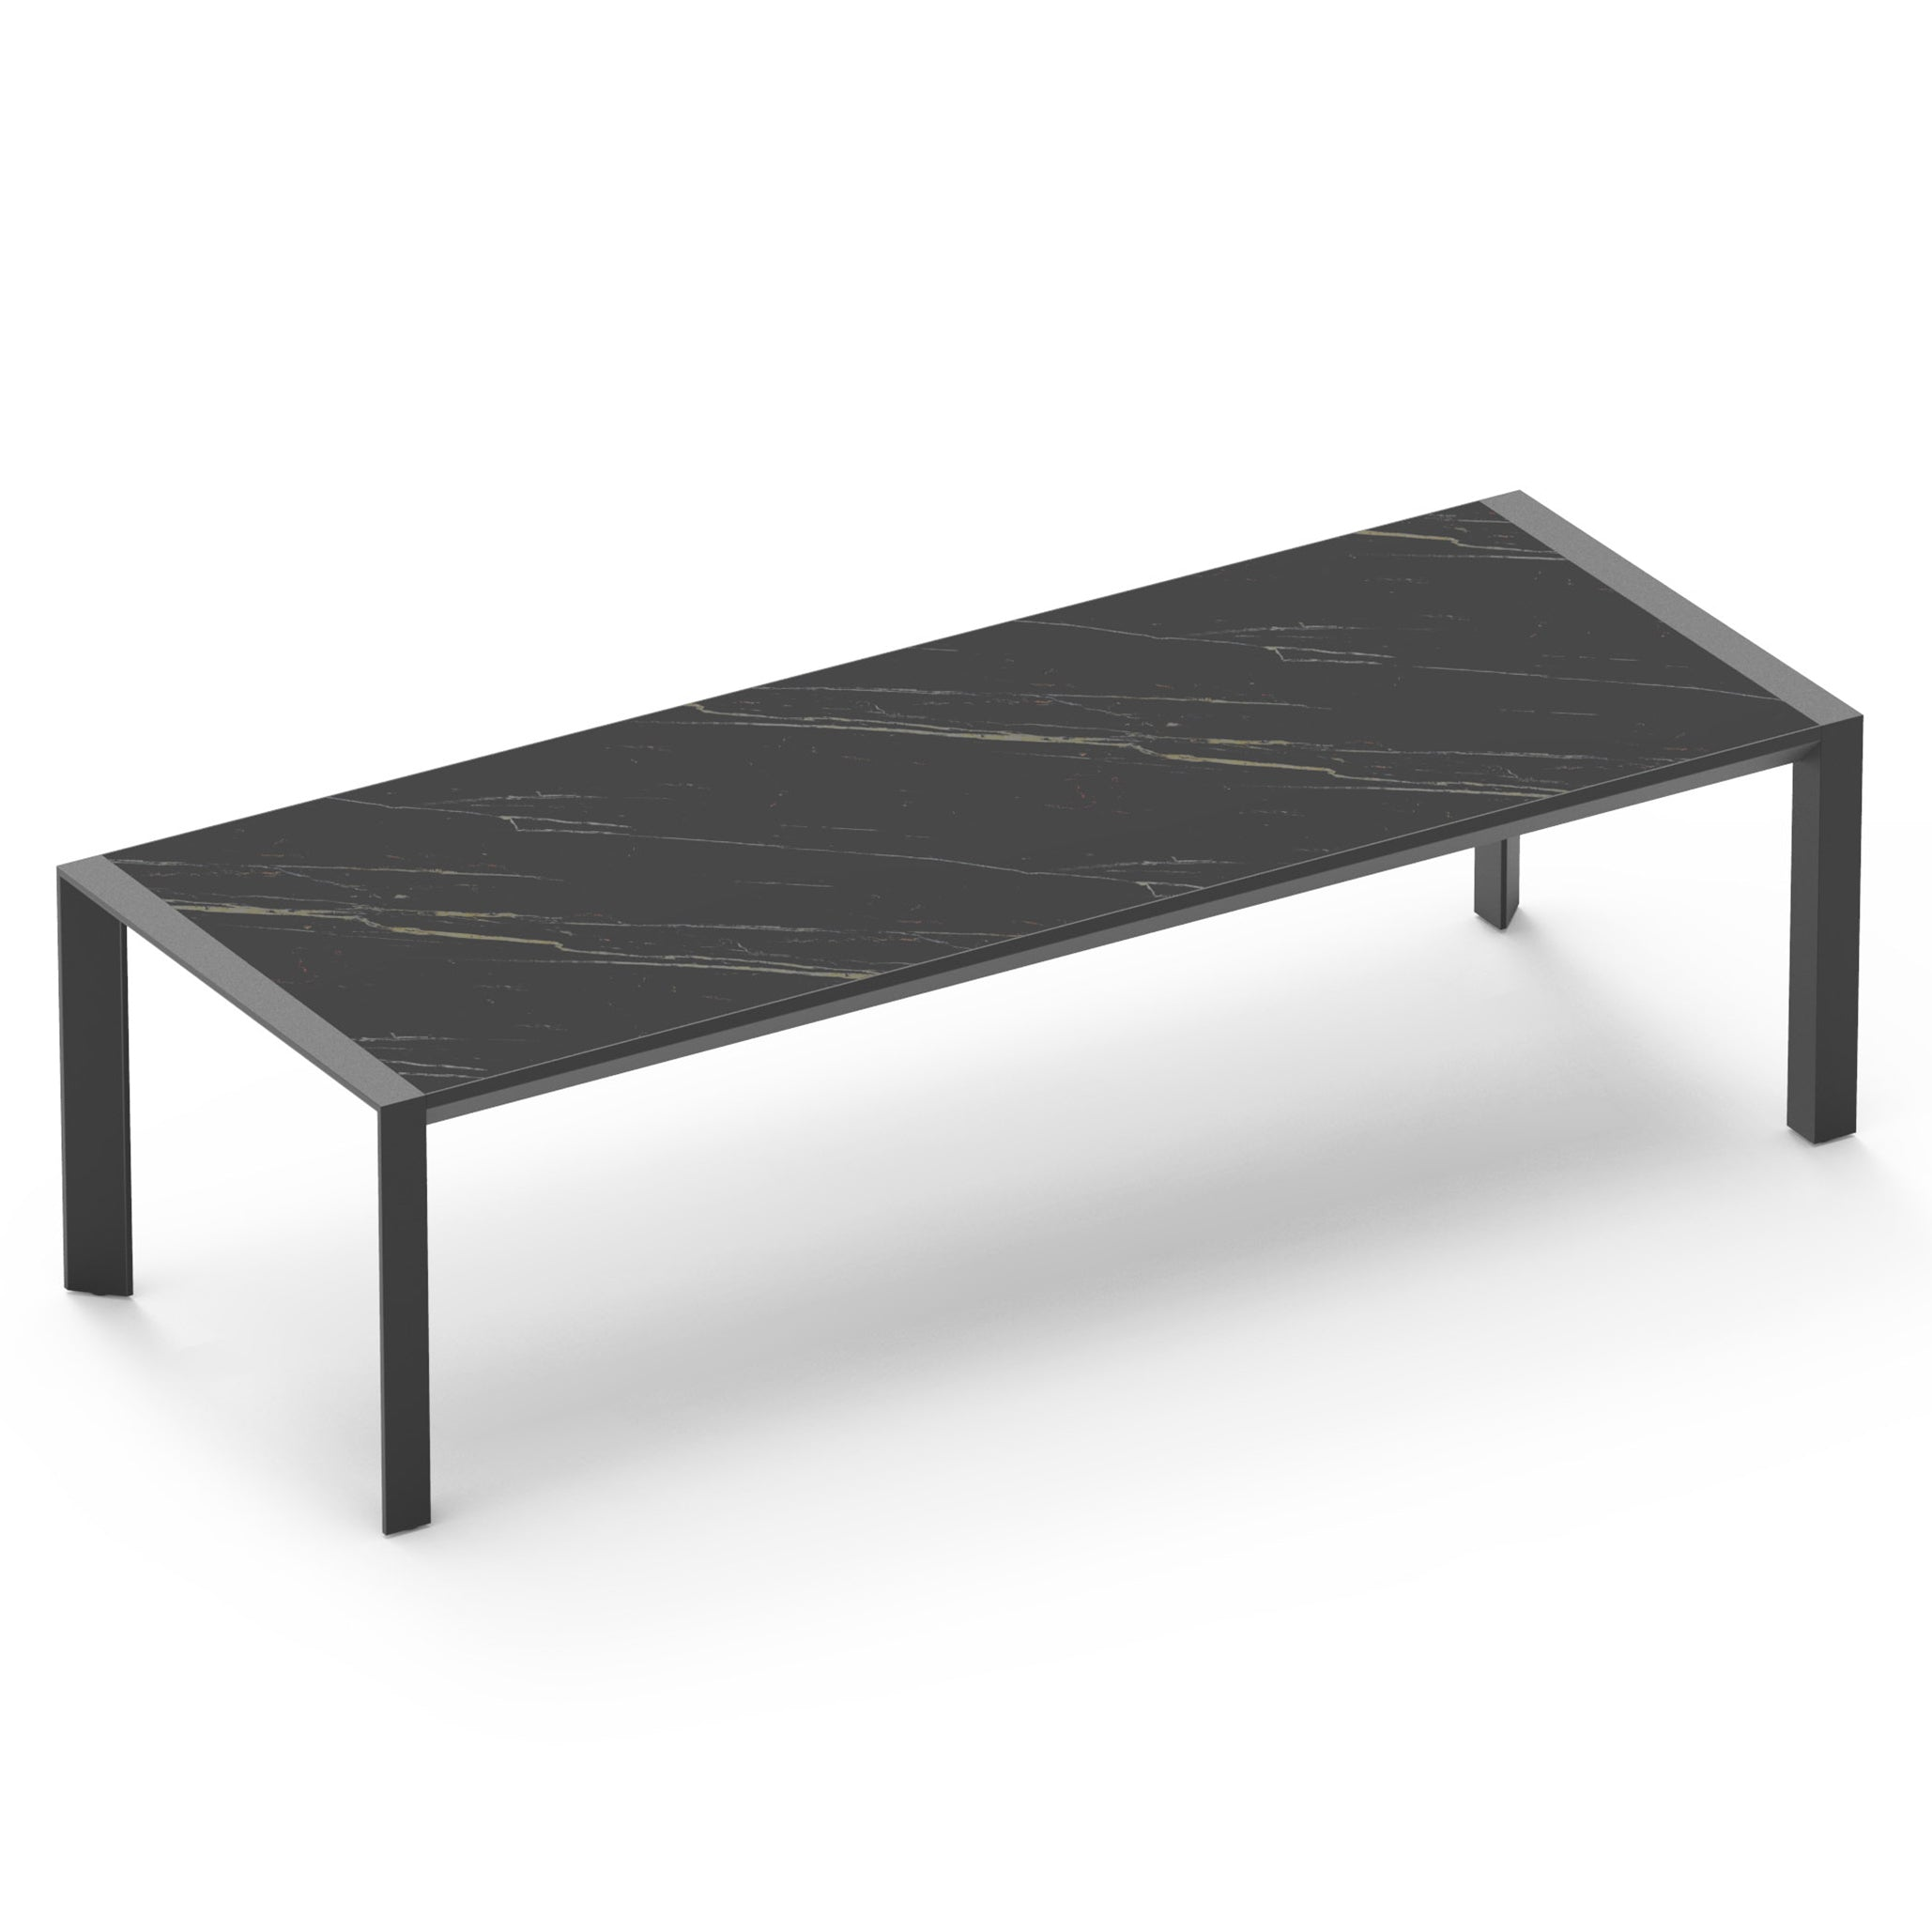 Vaucluse Outdoor Dining Table | Black